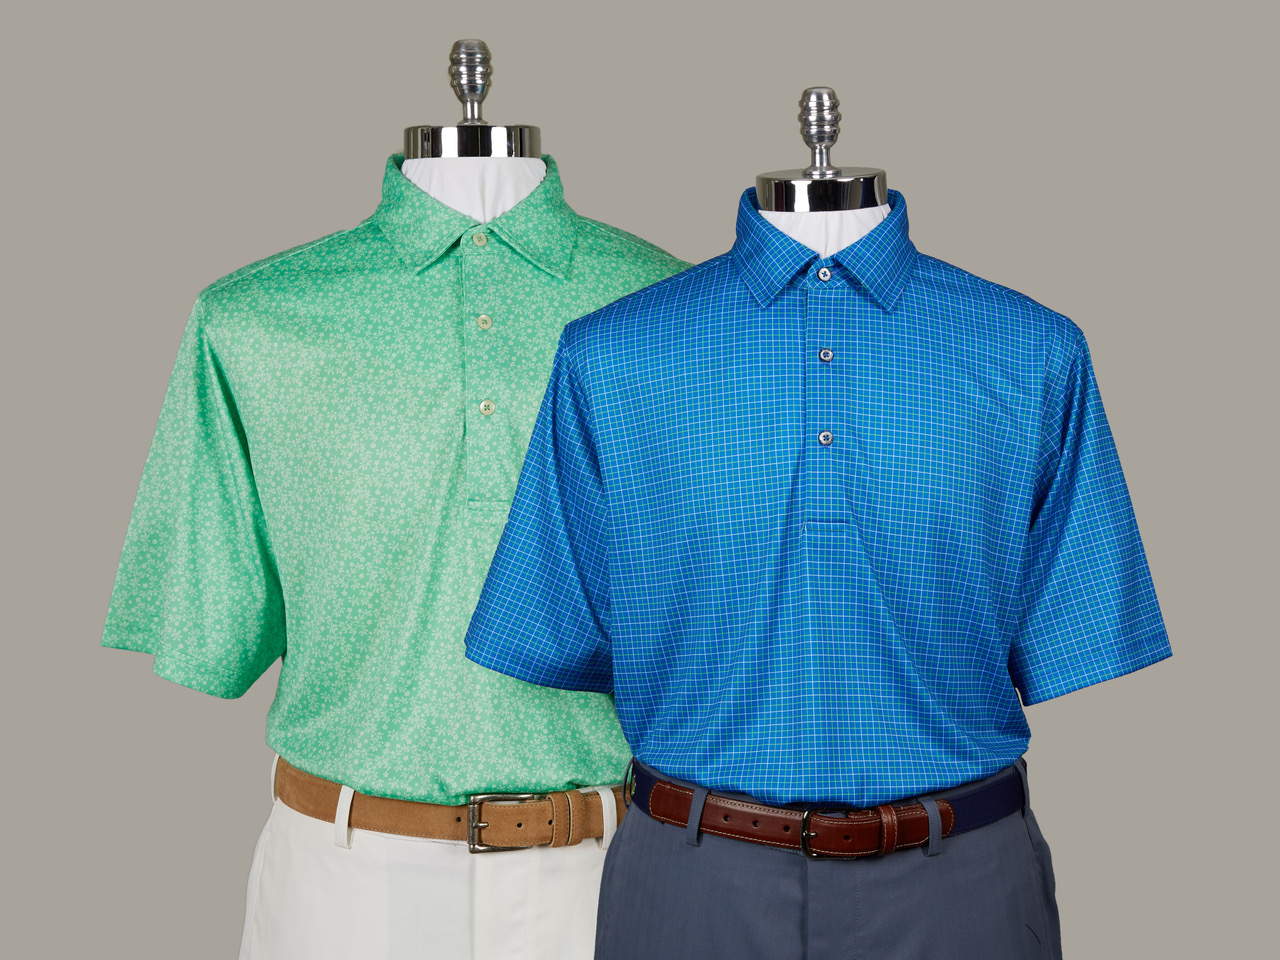 These wicking knit shirts from Donald Ross are characteristic of their entire product line -- timeless styling, long-lasting, with reliable performance components you can count on round after round.jpeg